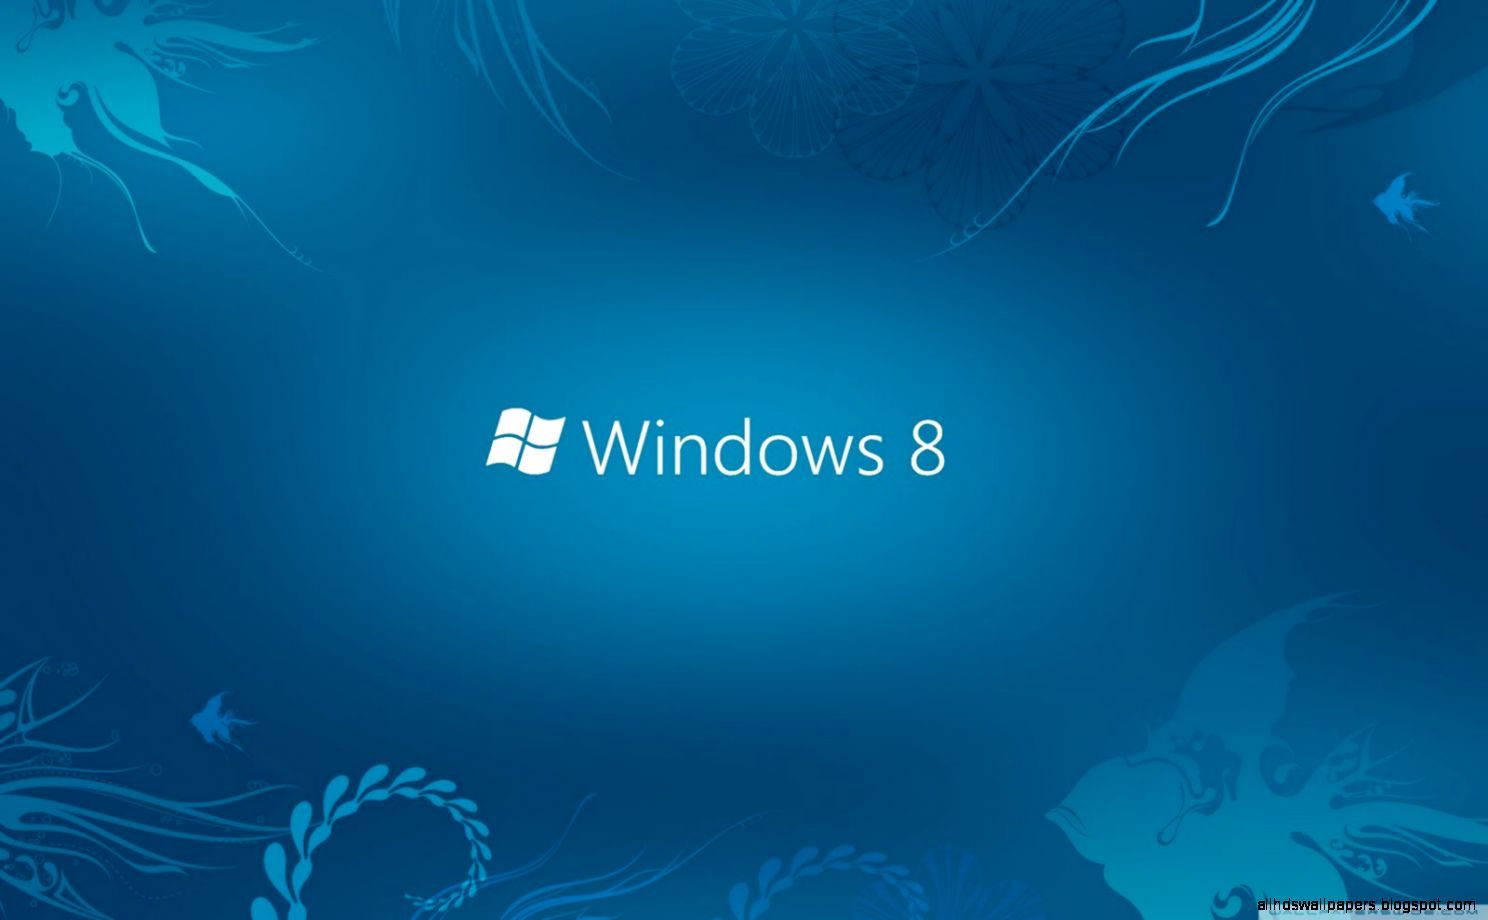 Windows 8 HD Wallpapers with Win8 Logo